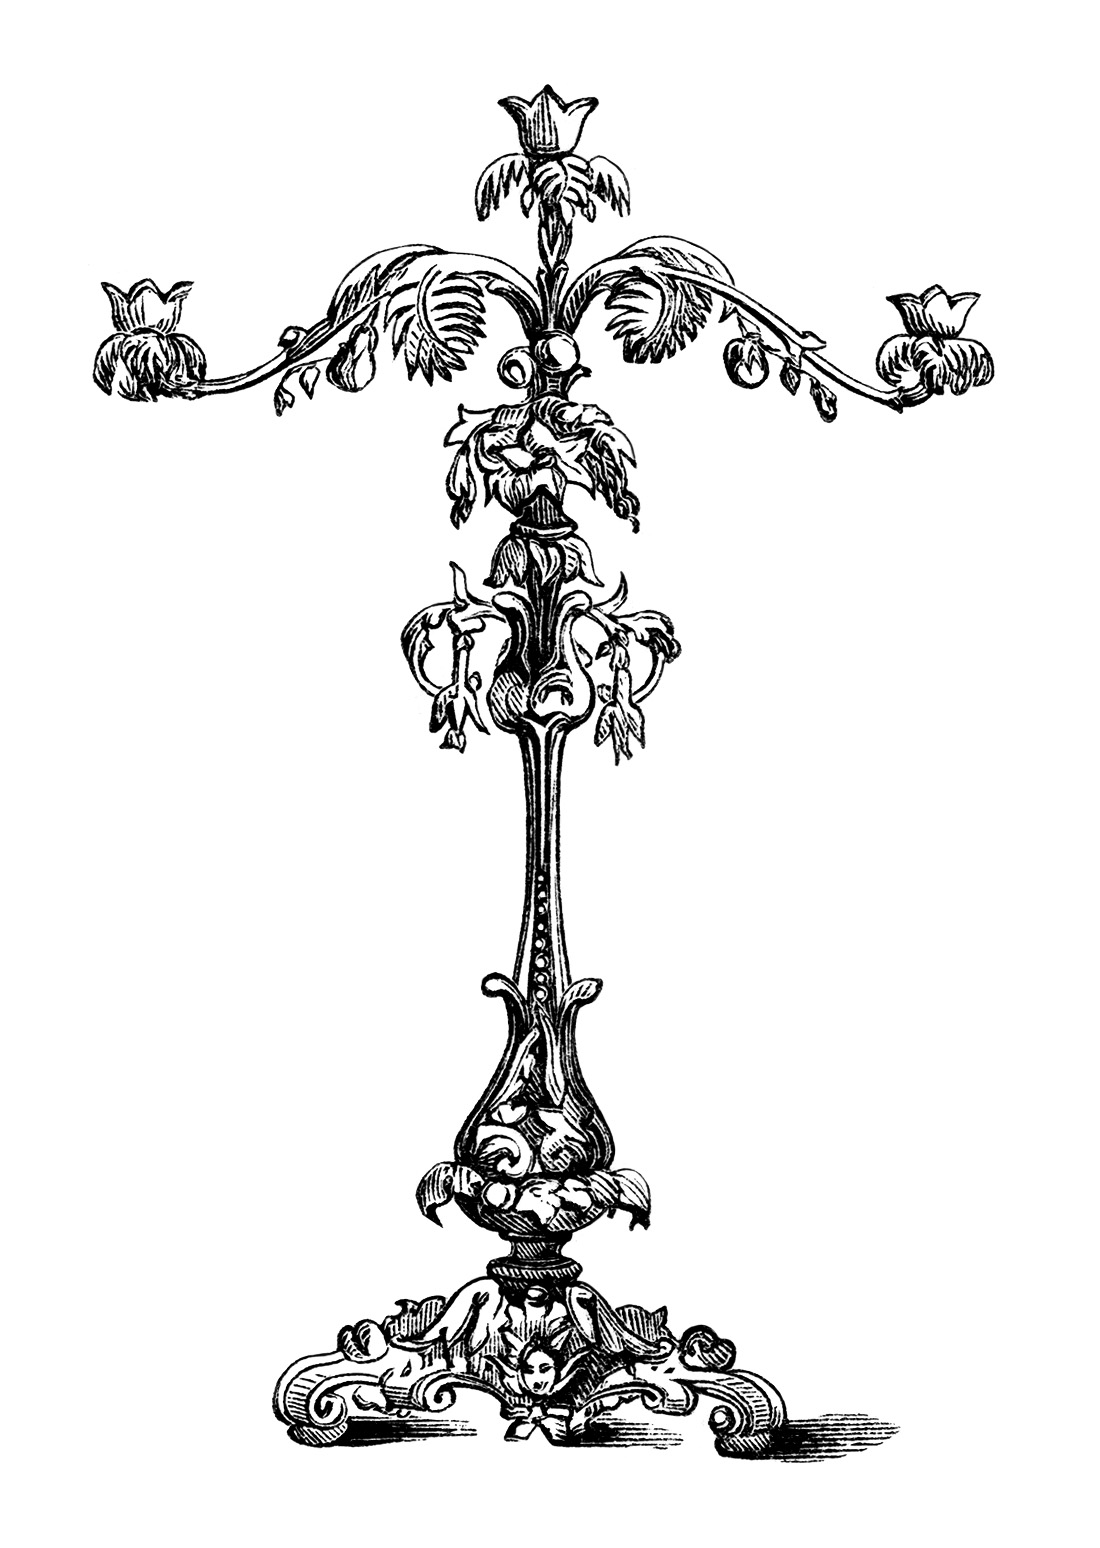 Antique Ornamental Candelabra Engravings Free Clip Art